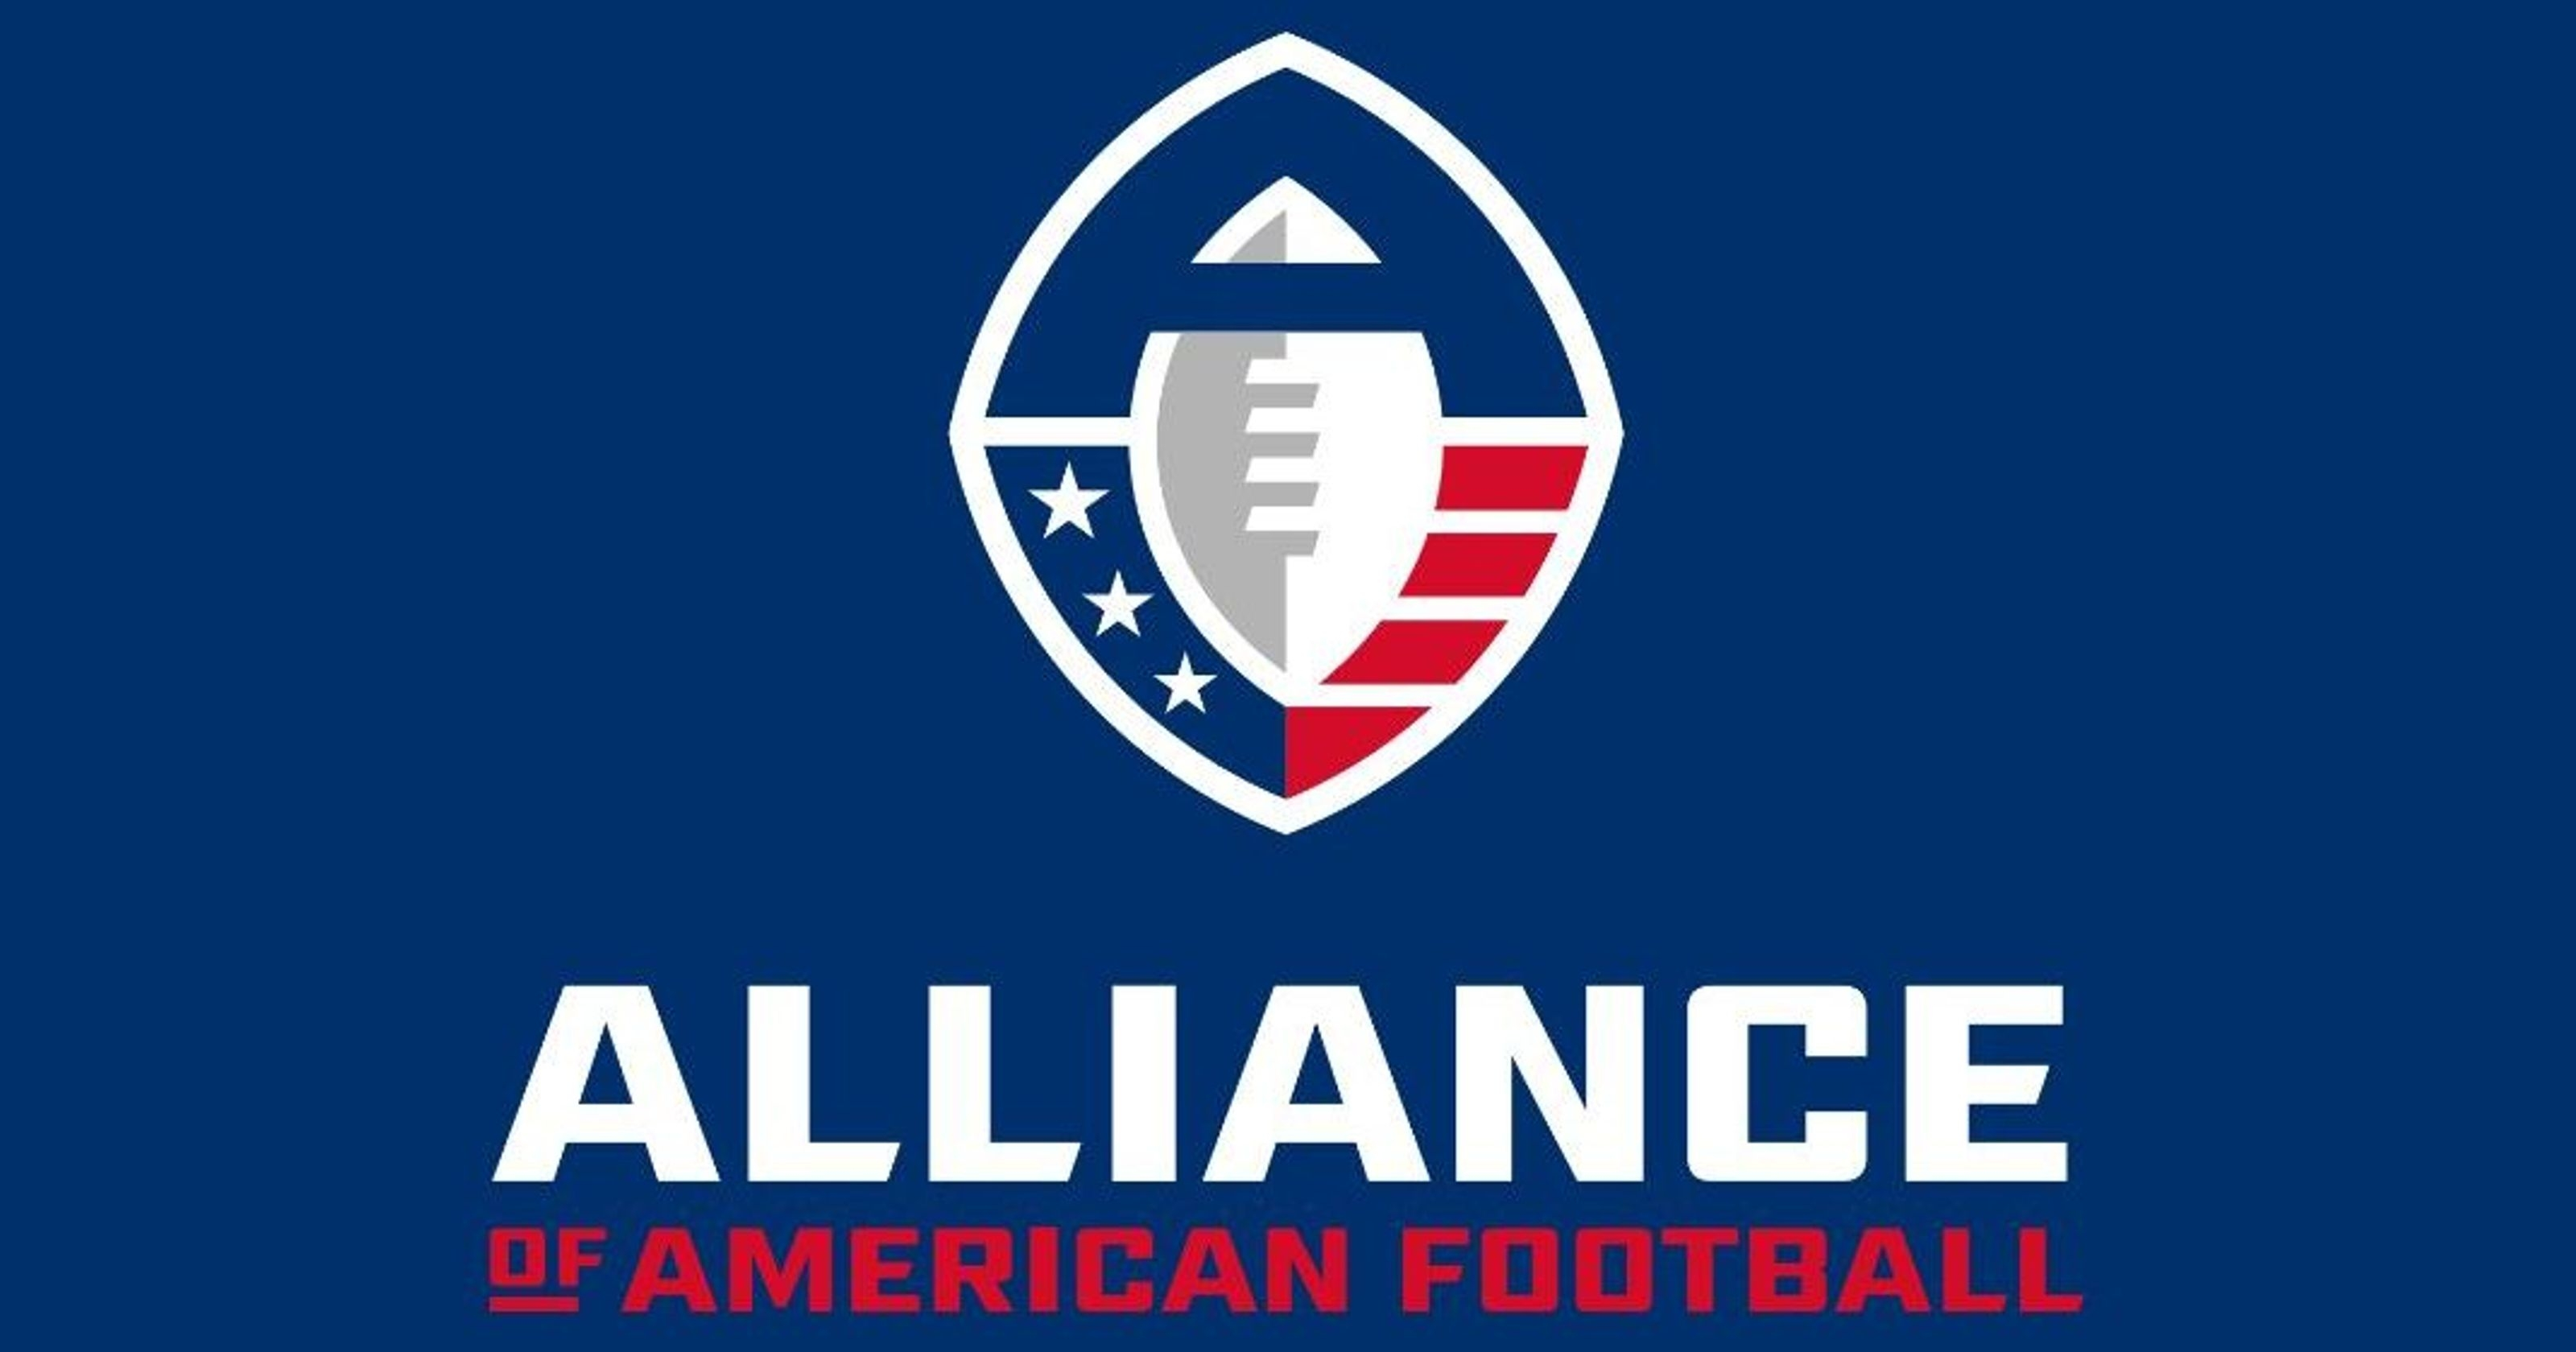 Here is your guide to the Alliance of American Football f9366aad4